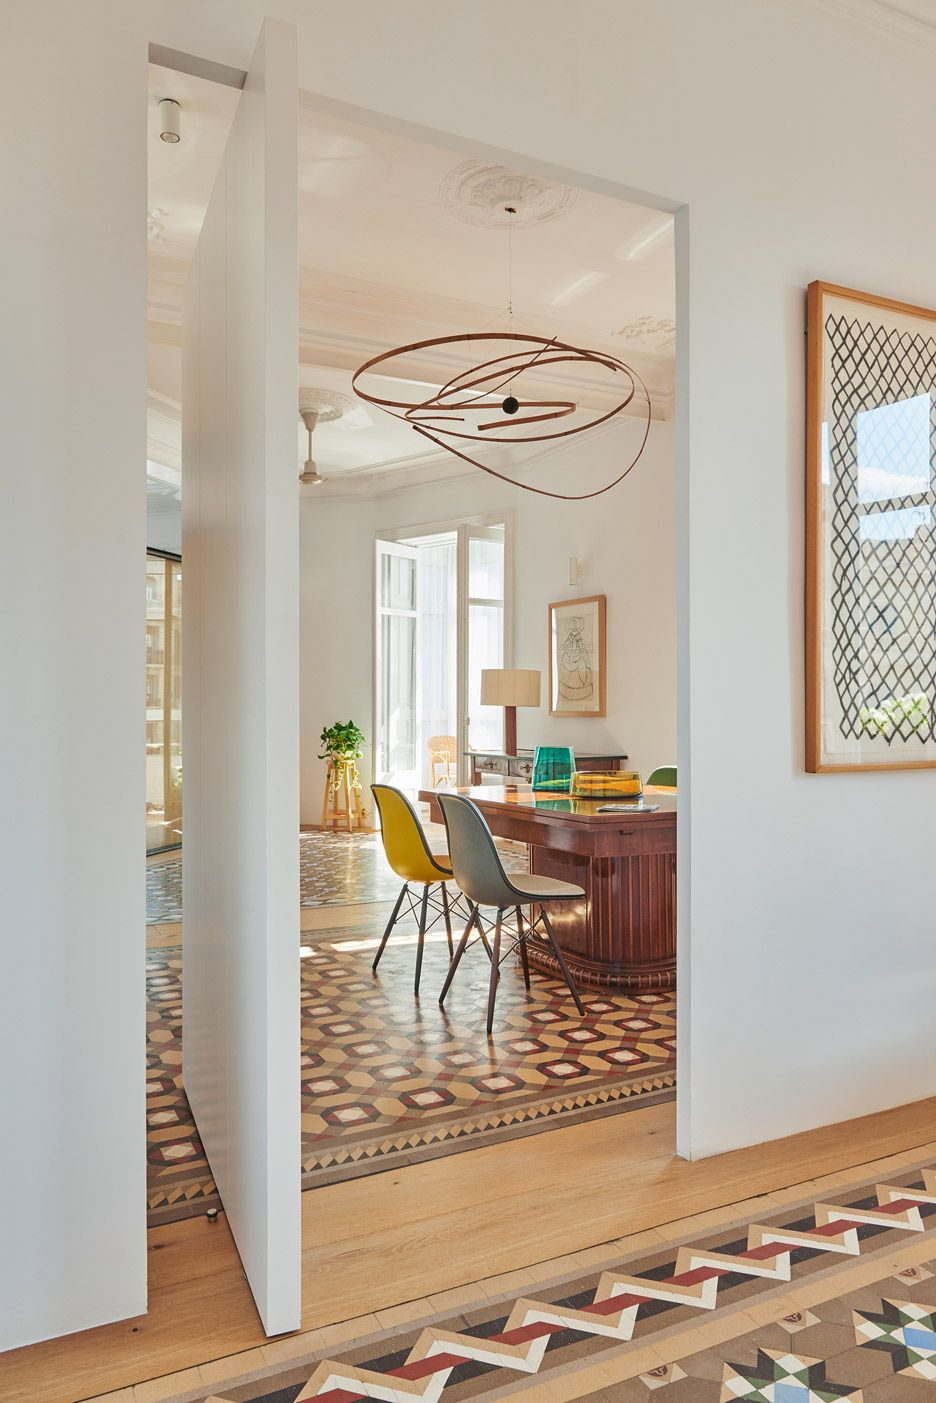 Built Architecture recently renovated this 19th-century Barcelona apartment in the historic Eixample district. (via Gau Paris)